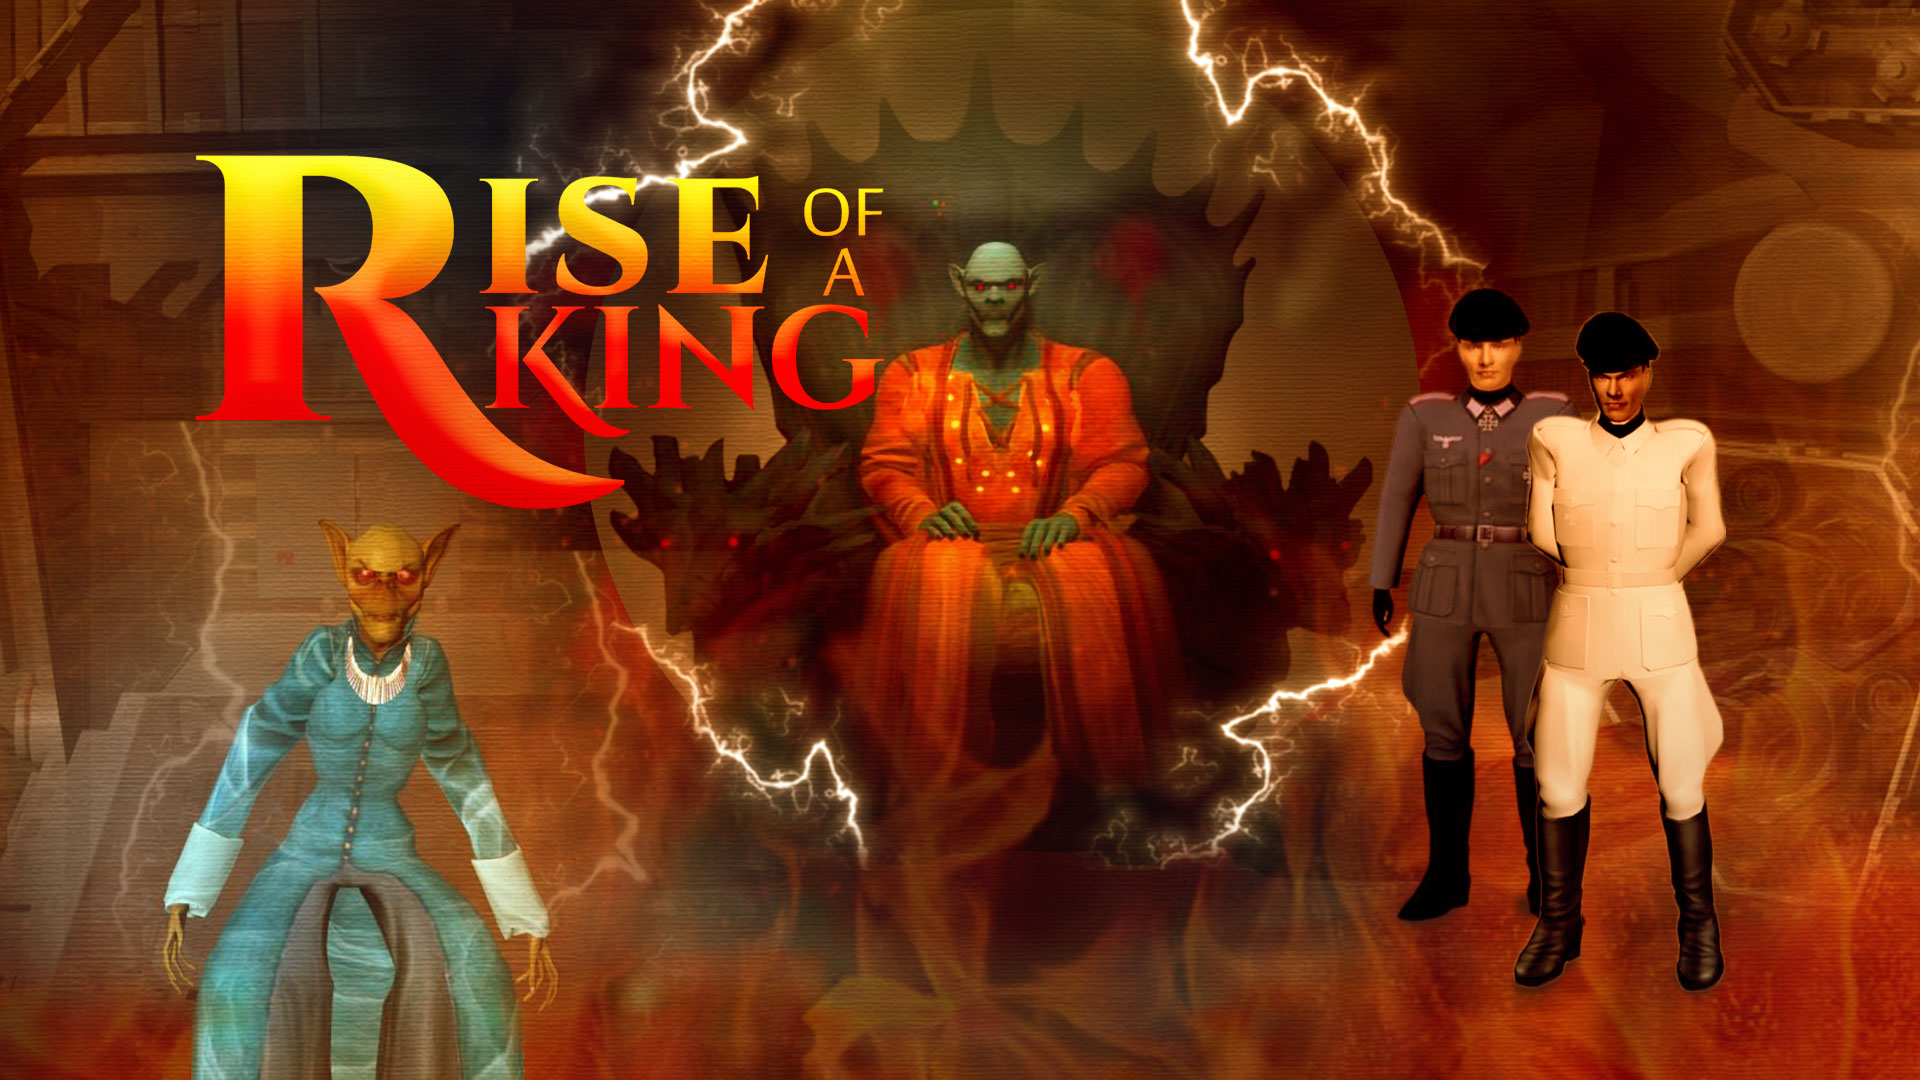 Rise of a king on Amazon Prime Instant Video UK